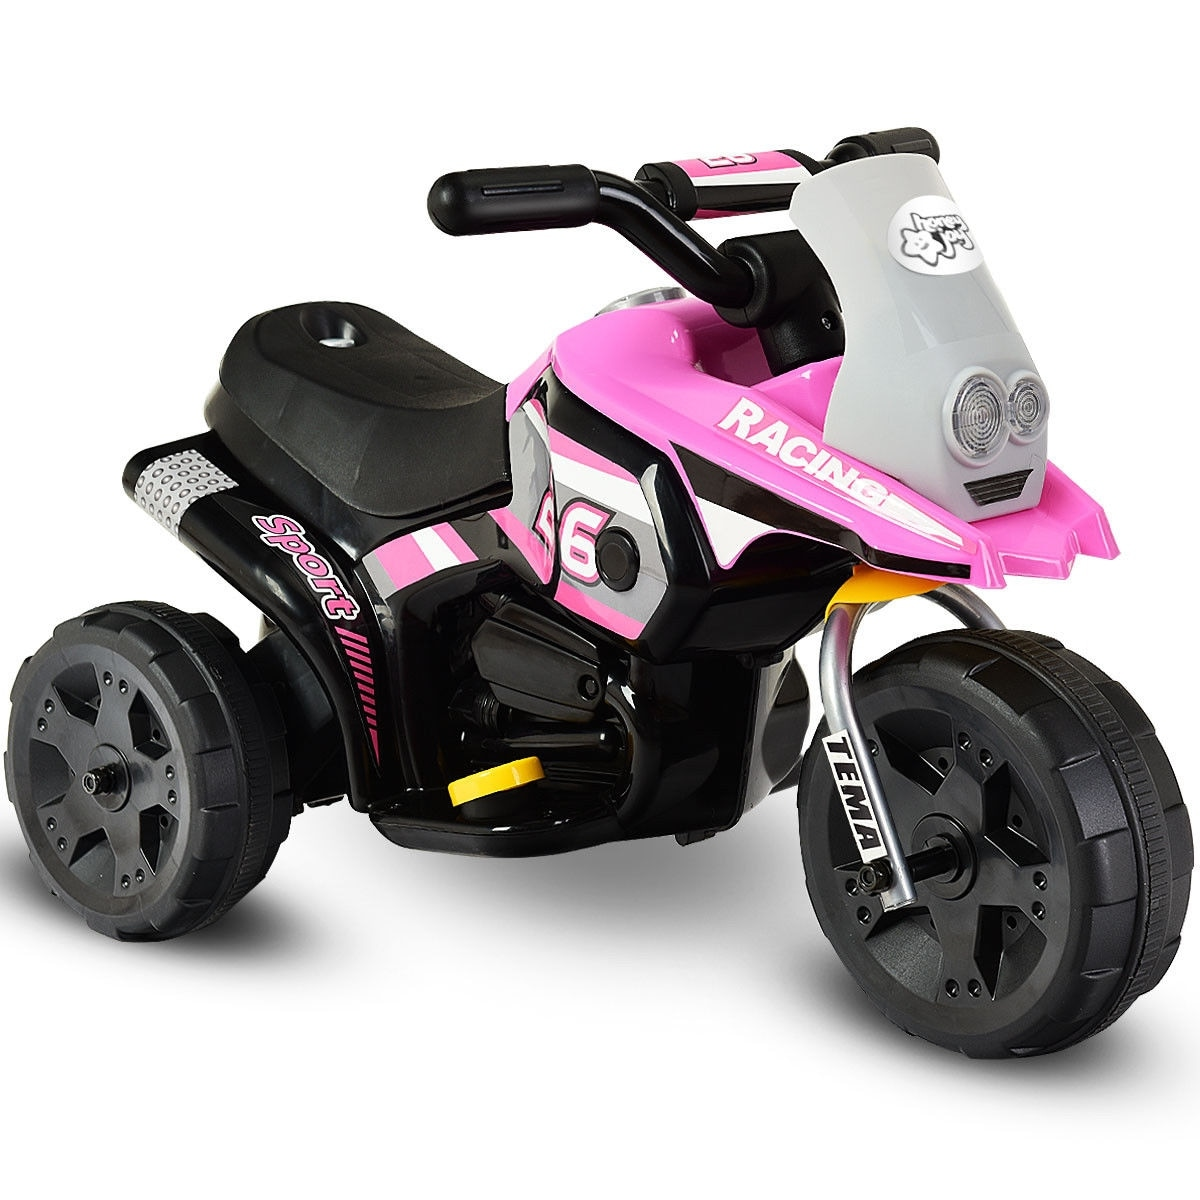 b01673c1021 Buy Powered Riding Toys Online at Overstock